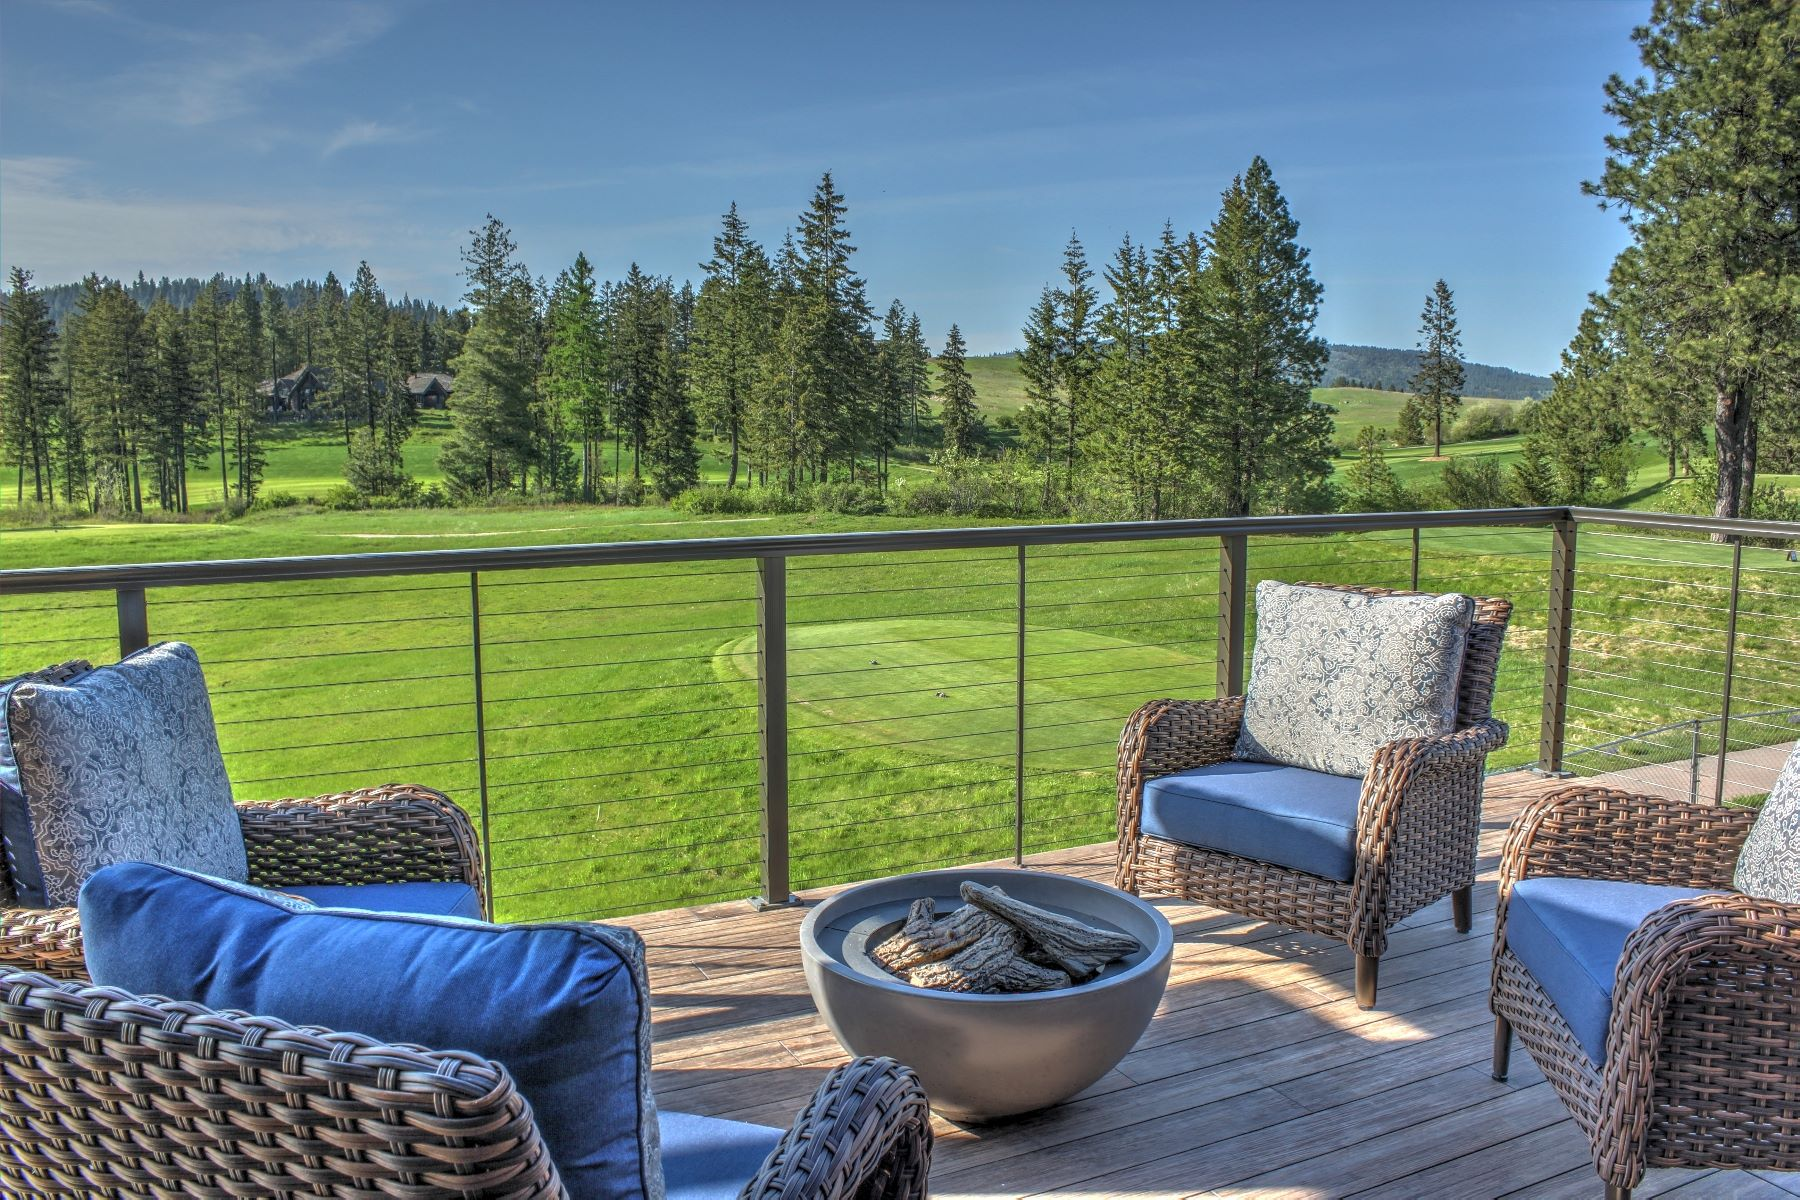 Maison unifamiliale pour l Vente à The Golf Cottages at Black Rock Phase 2 17824 S Kimberlite Dr Coeur D Alene, Idaho, 83814 États-Unis